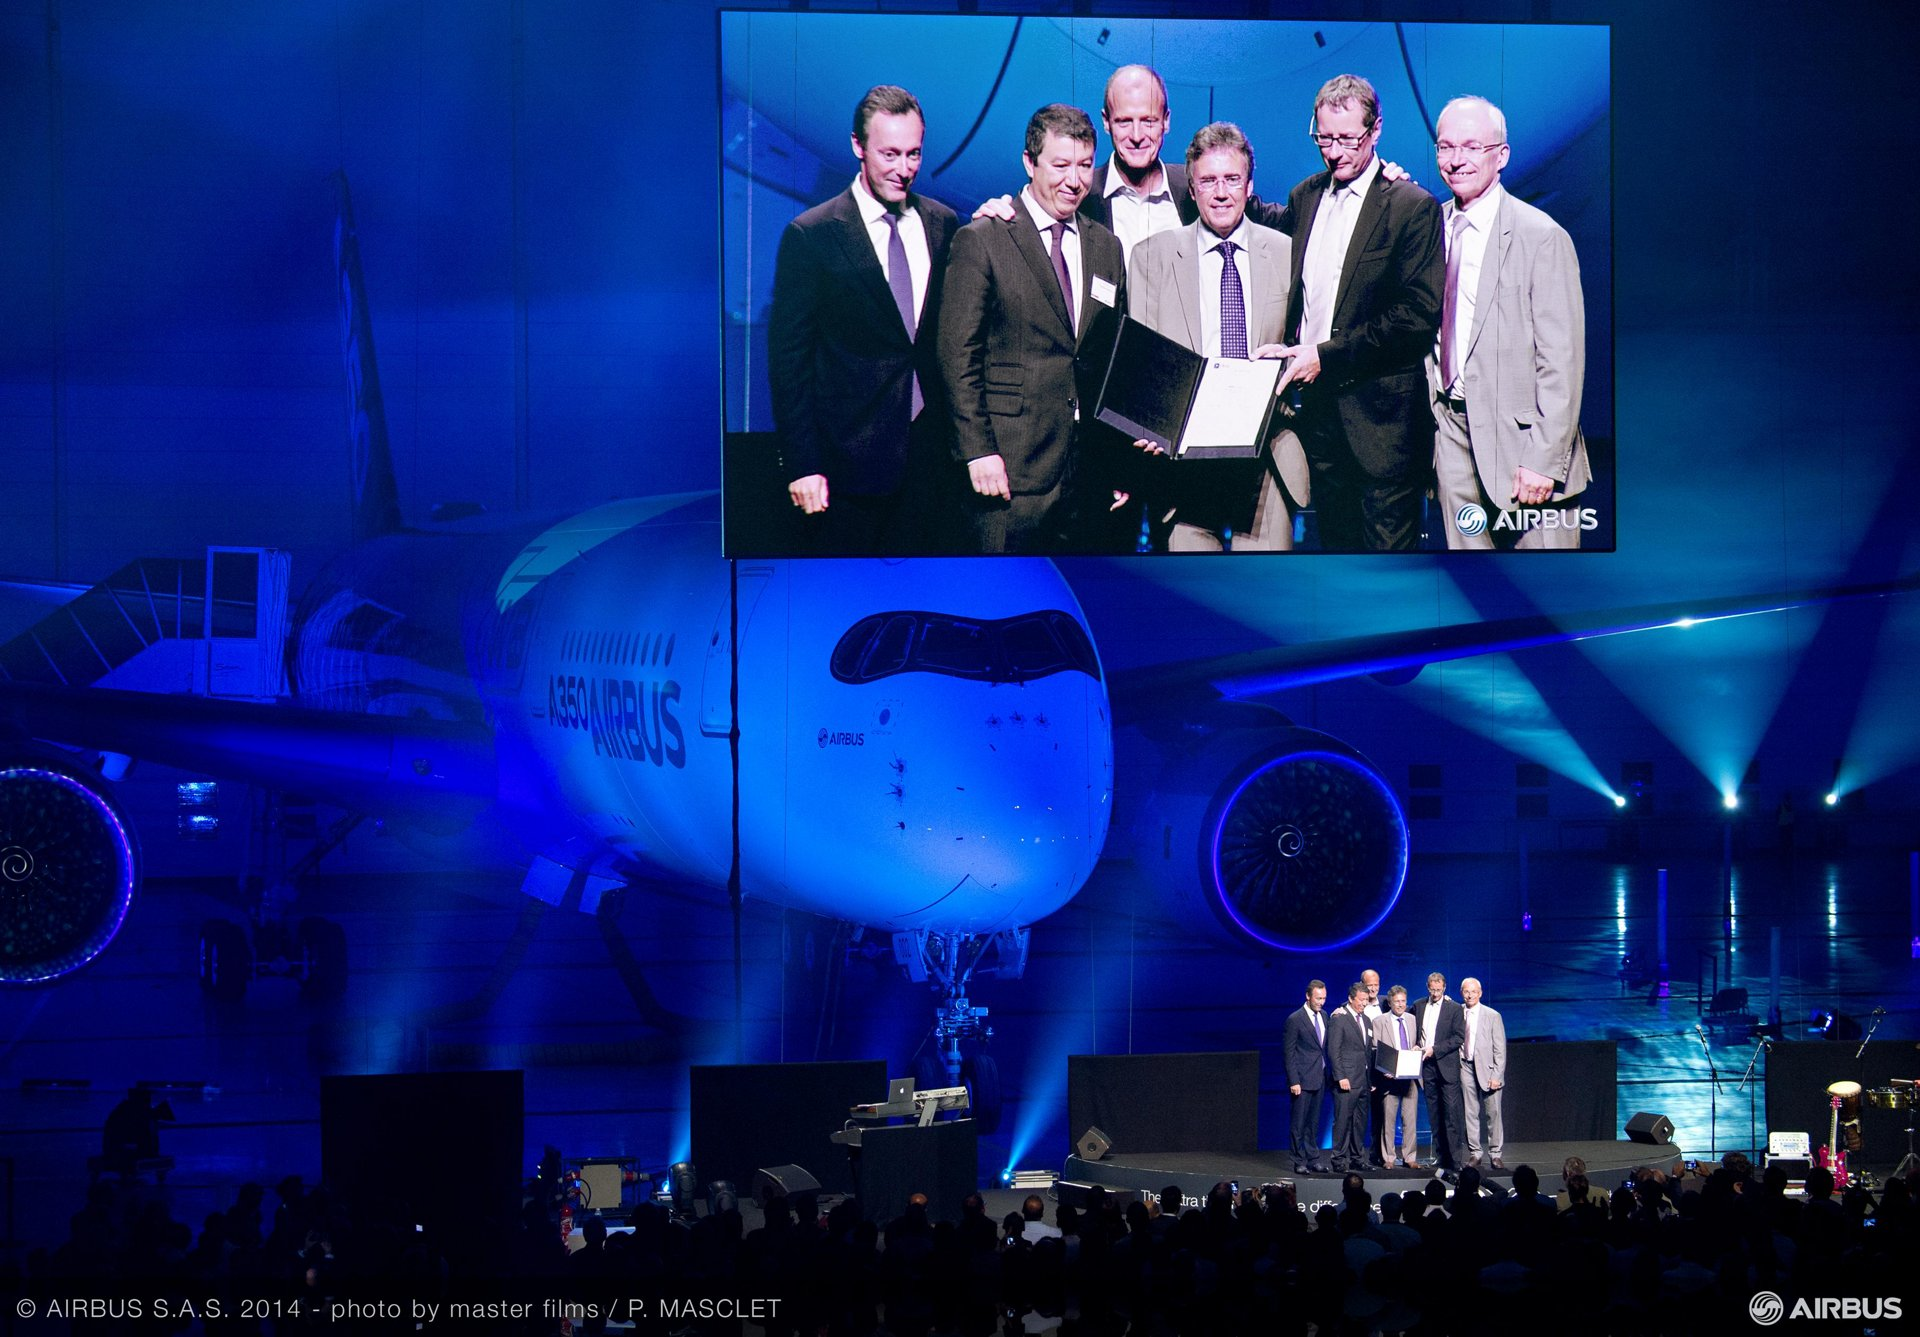 From left to right on 30 September 2014: Fabrice Brégier, Airbus President and CEO– Patrick Ky, Executive Director of EASA– Tom Enders, Airbus Group Chief Executive Officer– Gordon McConnell, A350 XWB Chief Engineer– Charles Champion, Airbus Executive Vice President Engineering– and Didier Evrard, Executive Vice President, Head of A350 XWB Programme